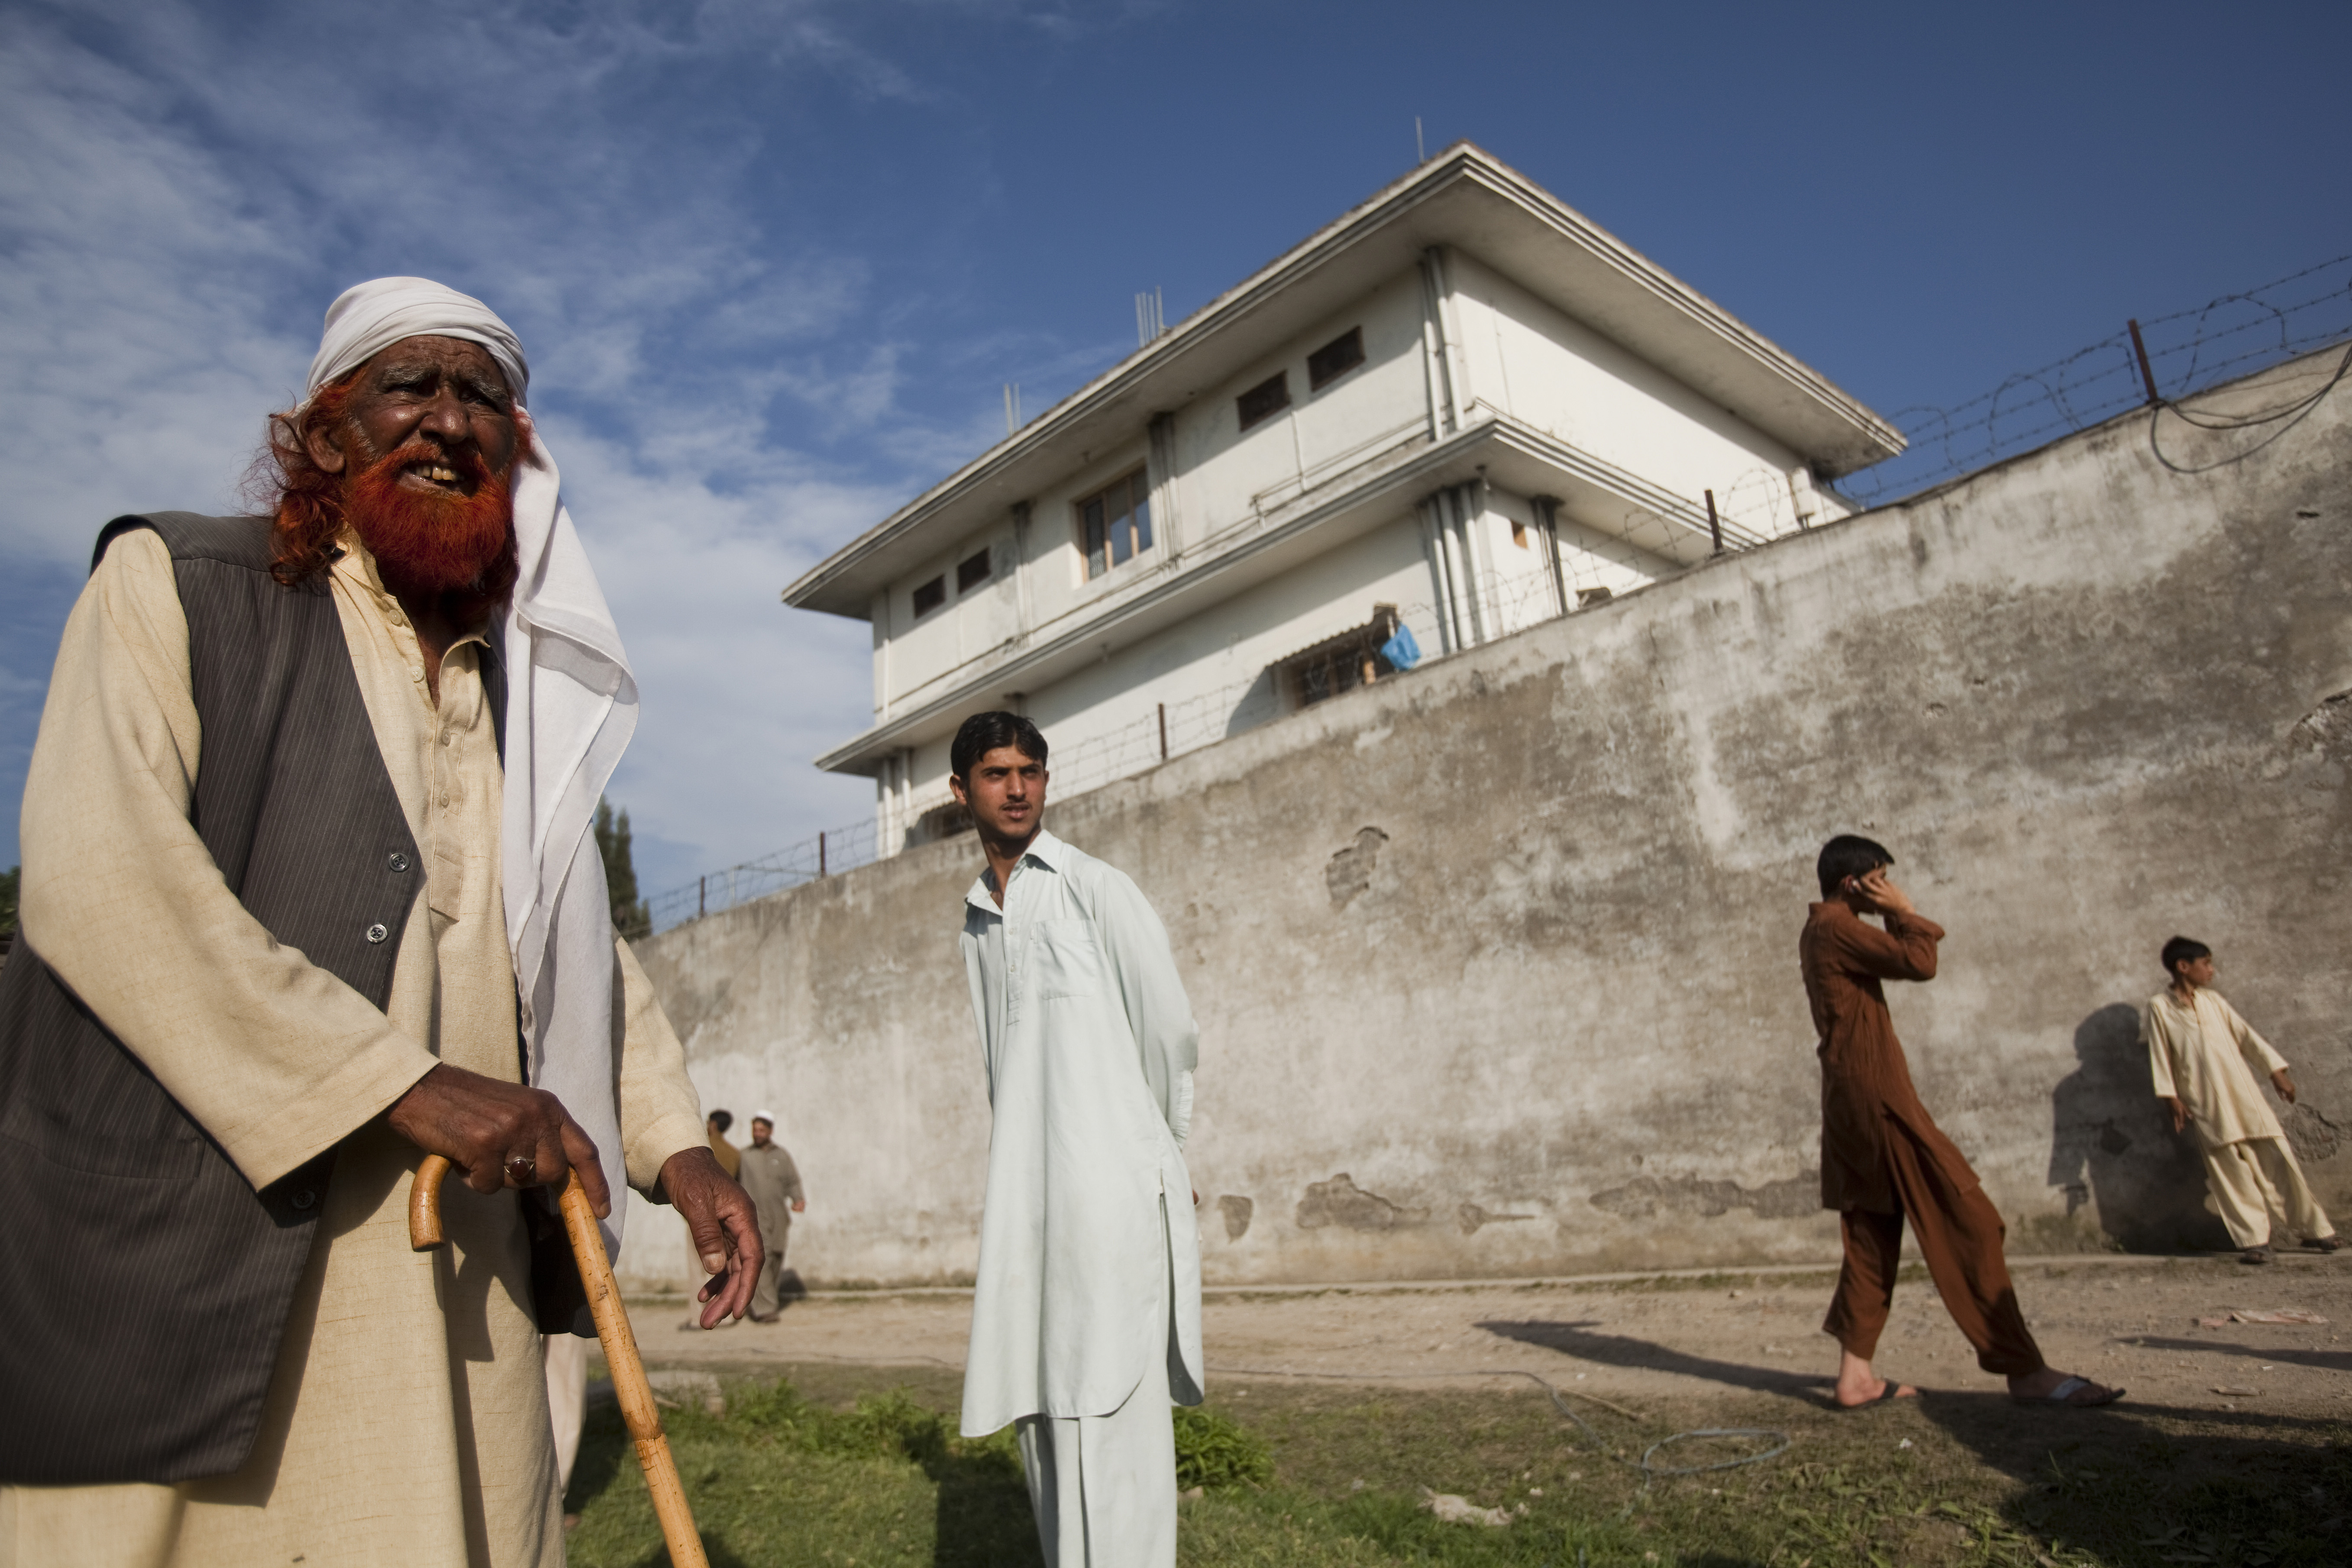 May 3, 2011. Locals gather outside the compound where Osama bin Laden was reportedly killed in an operation by U.S. Navy Seals in Abottabad, Pakistan.